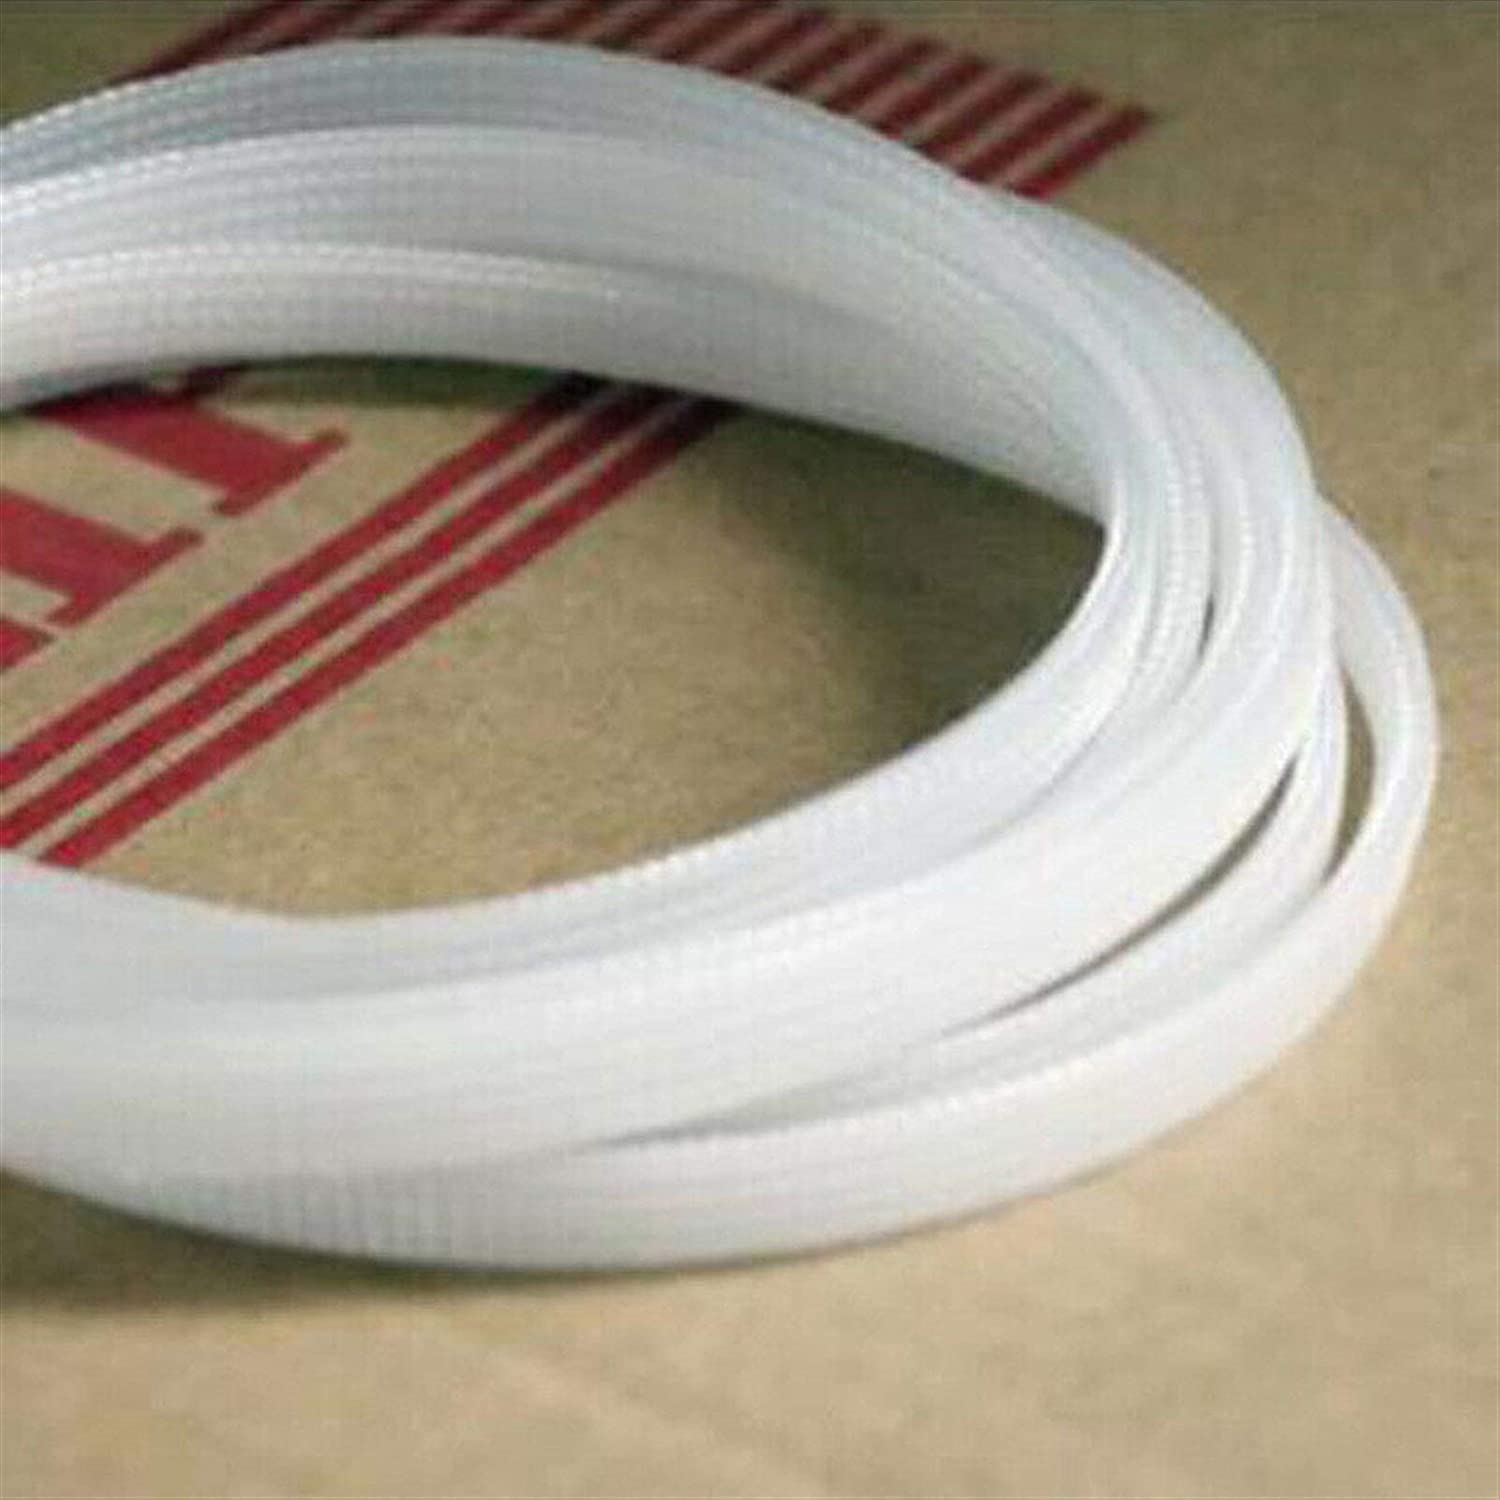 Cable Tidy New York Mall Sleeves Length Max 47% OFF 1-50M Inside O Diameter